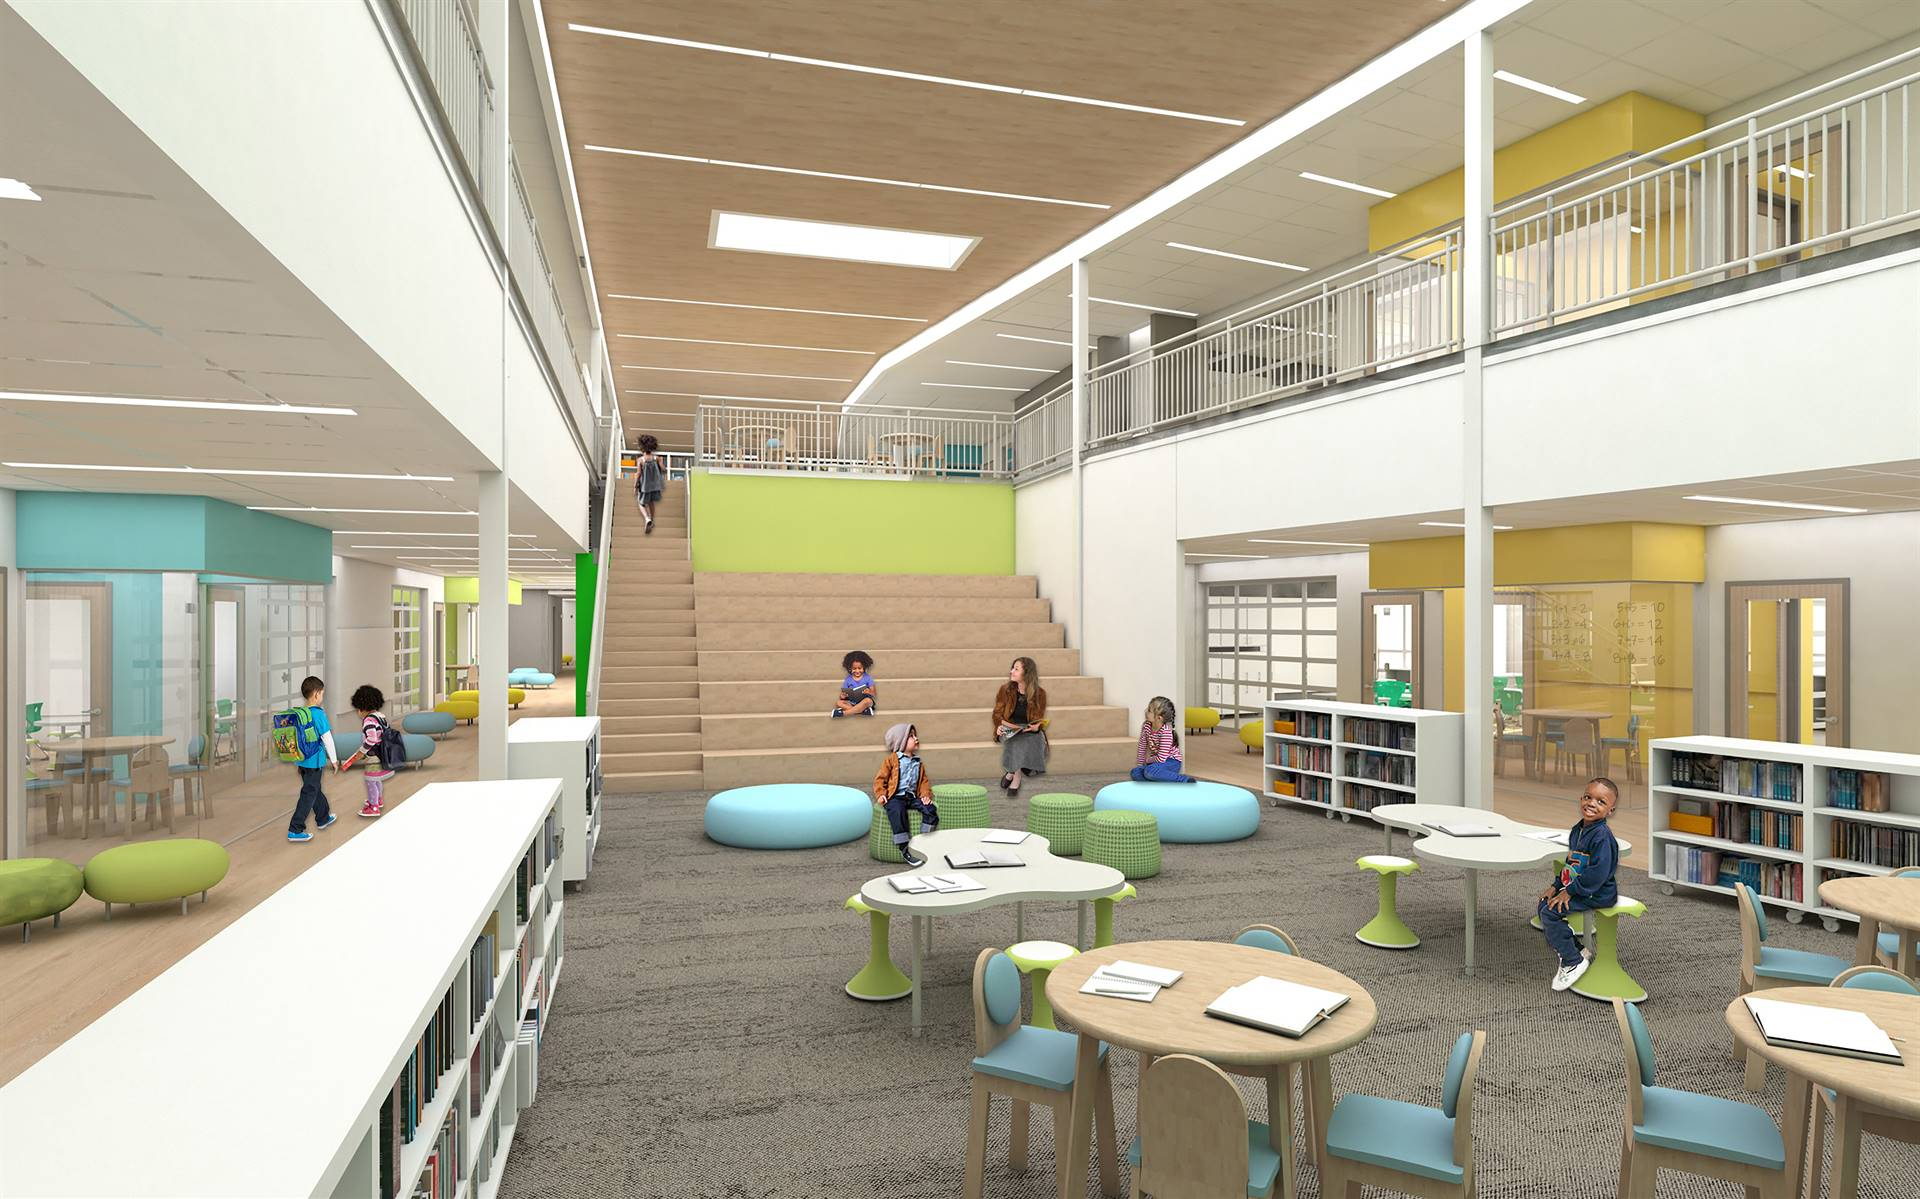 An interior view of the new media center, with a learning staircase and flexible seating